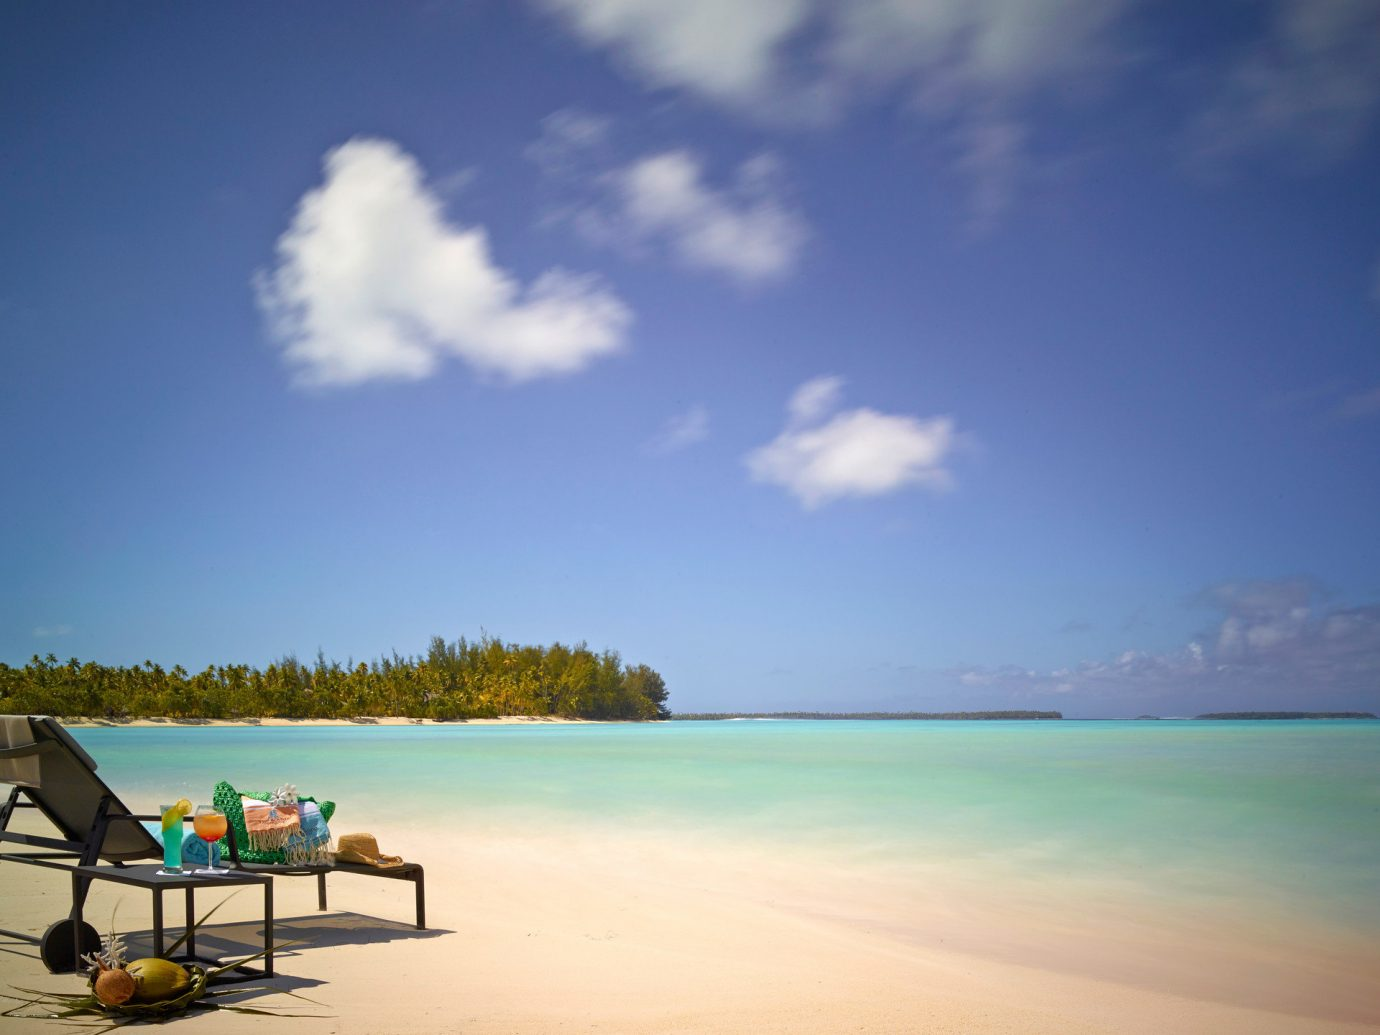 All-Inclusive Resorts Beach clear water Greenery Hotels Island Islands isolation lounge chairs Luxury Travel Ocean palm trees people relaxation relaxing remote serene sunbathing Tropical turquoise white sands sky outdoor water Sea body of water shore horizon vacation bay caribbean Coast Lagoon clouds sandy day